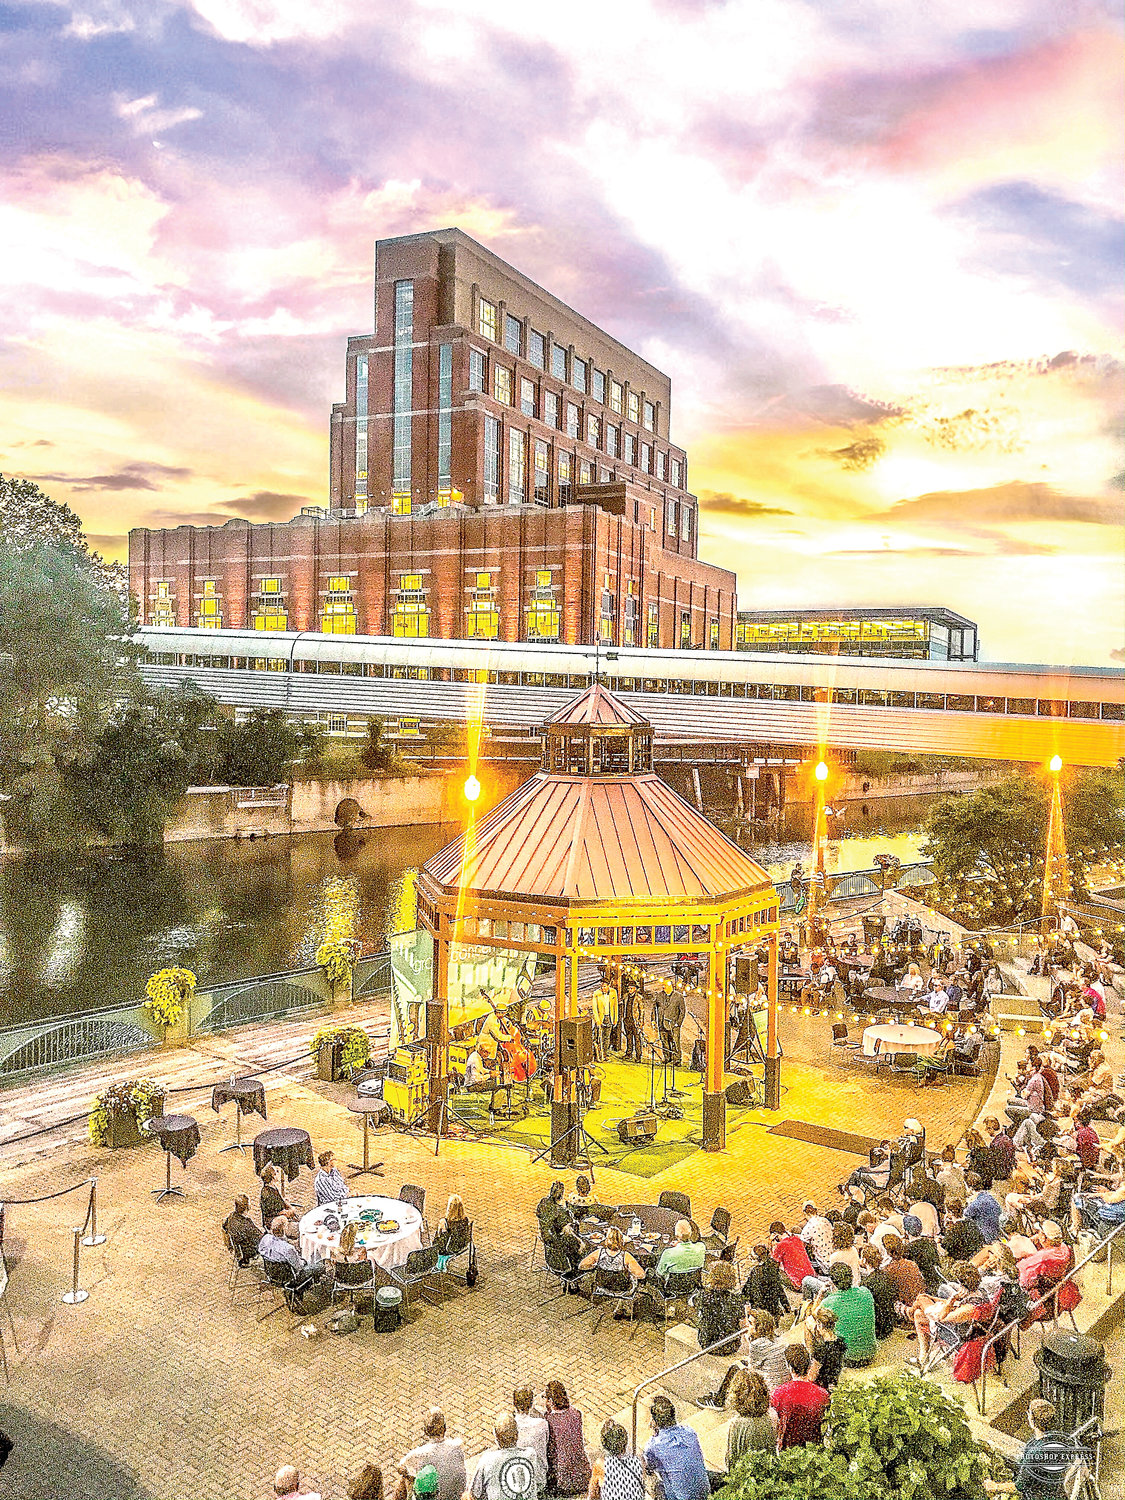 Lansing's downtown riverfront came alive Sept. 10 with a big slate of events, including a concert by the MSU Professors of Jazz at the convention center pavilion (pictured) and the opening of Rotary Park a few hundred feet upstream.